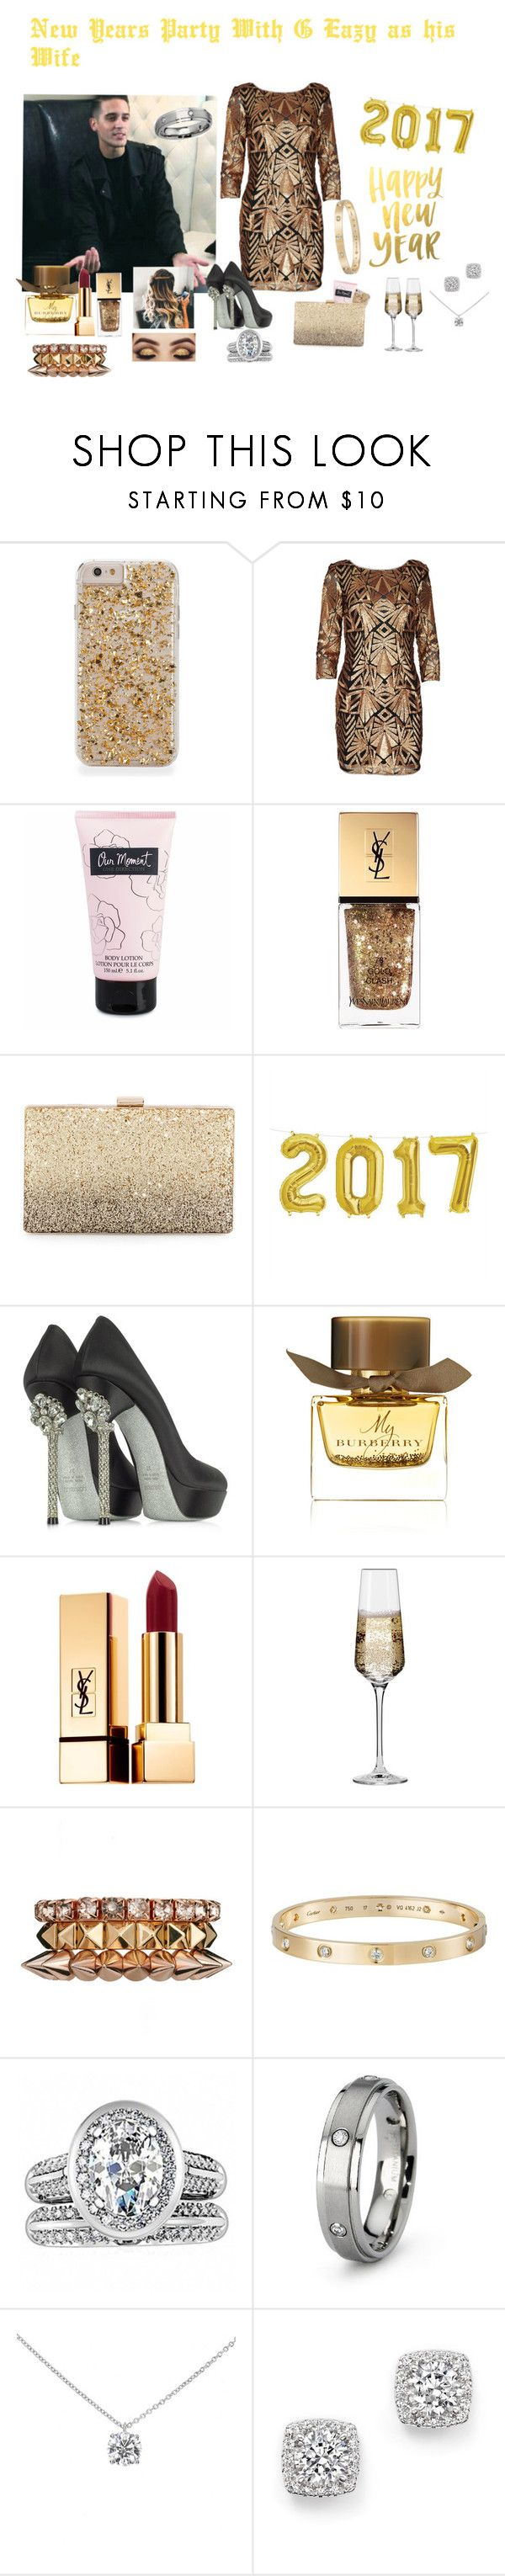 """""""New Years Party With G Eazy as his Wife"""" by jordonpayne ❤ liked on Polyvore featuring Yves Saint Laurent, Neiman Marcus, Loriblu, Burberry, Krosno, ASOS, Cartier, Fantasy Jewelry Box, Tiffany & Co. and Bloomingdale's"""